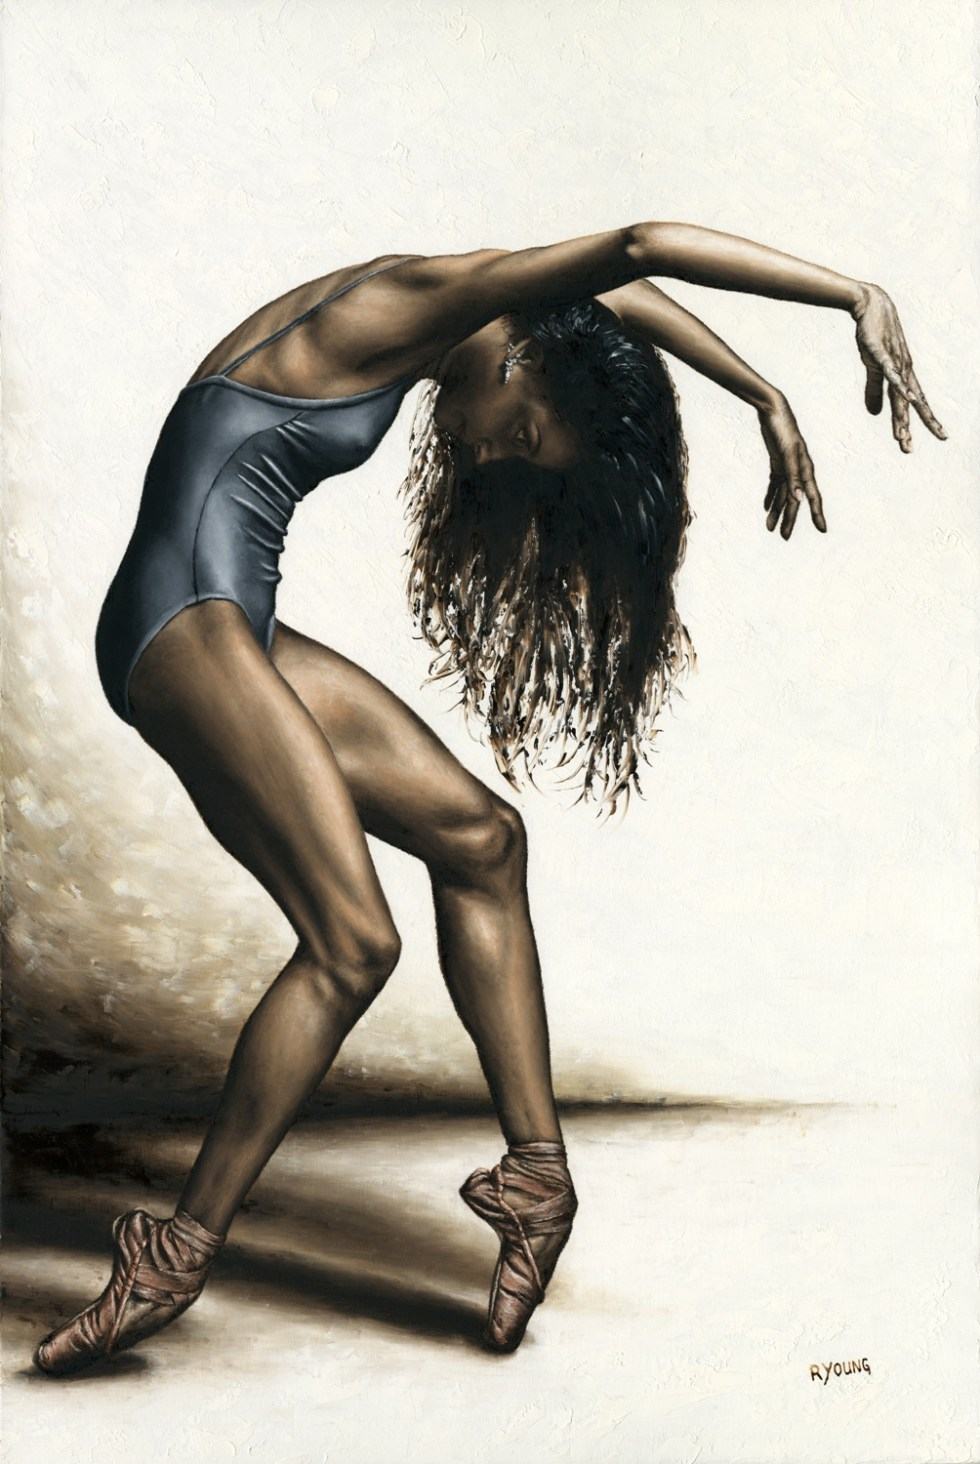 Dancers - Ballet Art Gallery. Dance Intensity - Arianni Martin. Fine art original oil painting on a 91cm x 61cm stretched canvas created in 2017 using a knife. Produced in cooperation with Ron Brewer and Arianni. Original available. Framed = £1,850